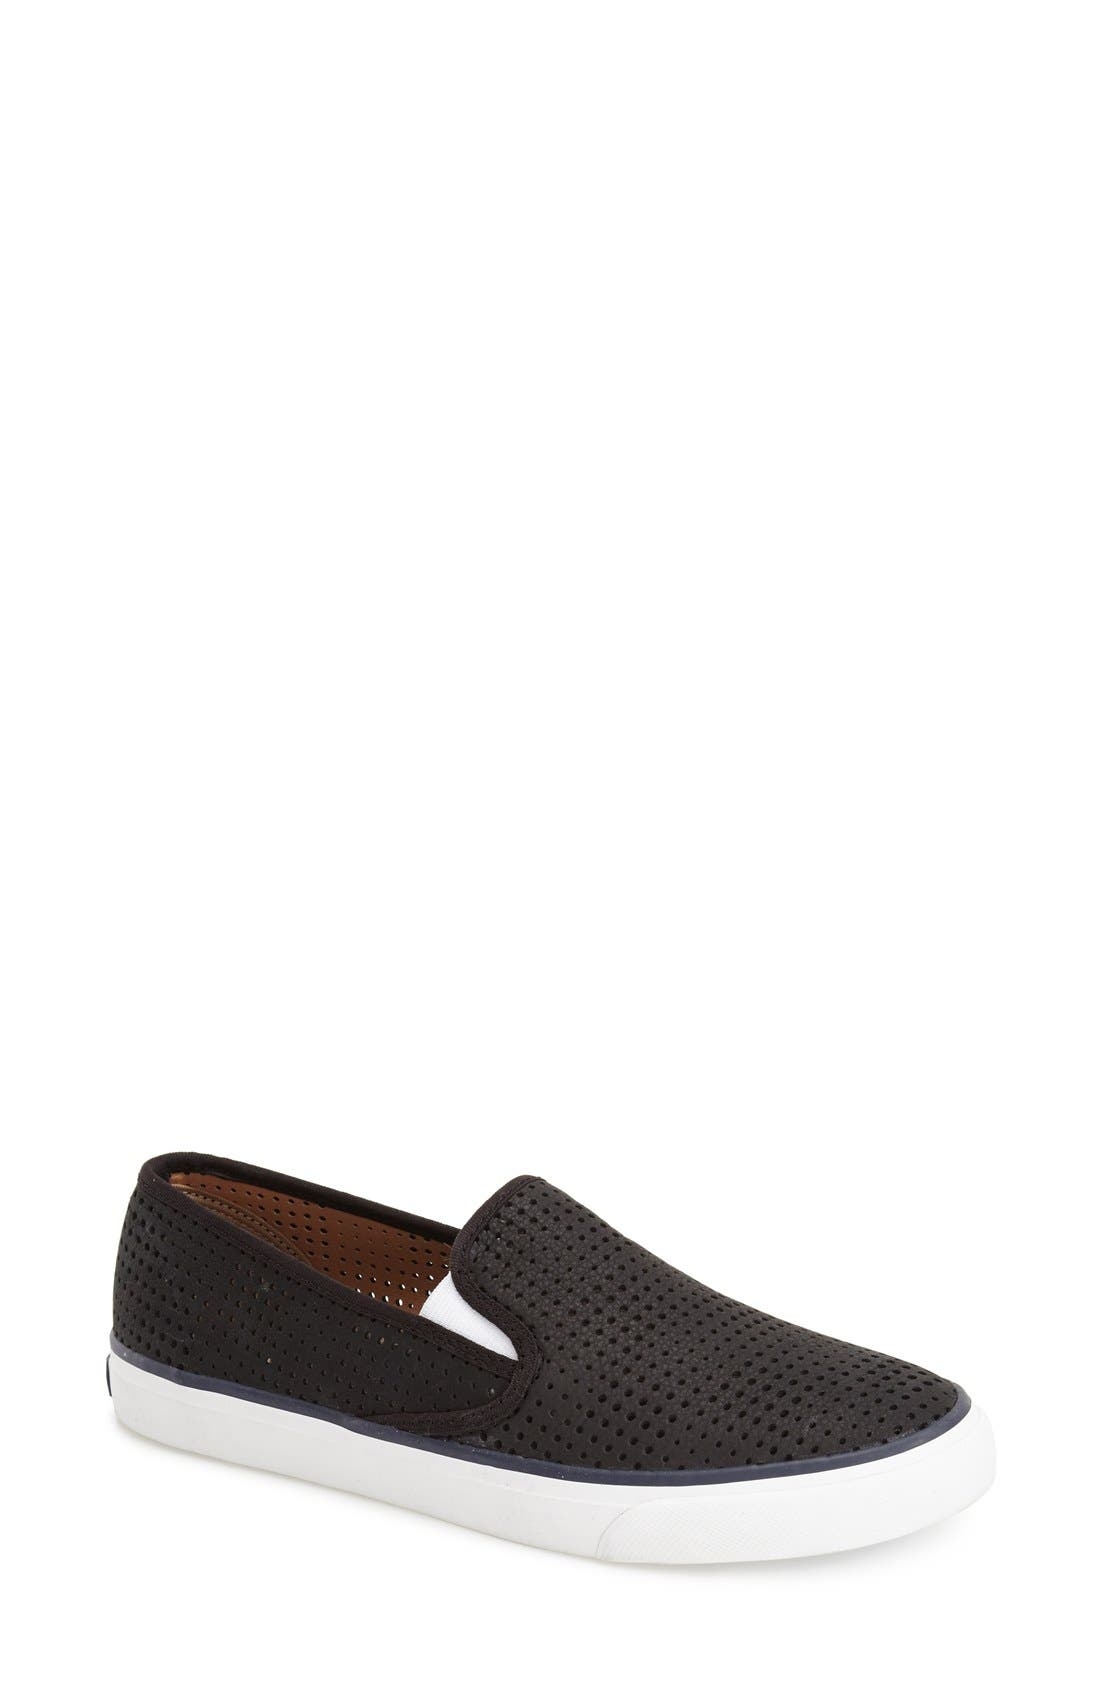 'Seaside' Perforated Slip-On Sneaker,                             Main thumbnail 1, color,                             001